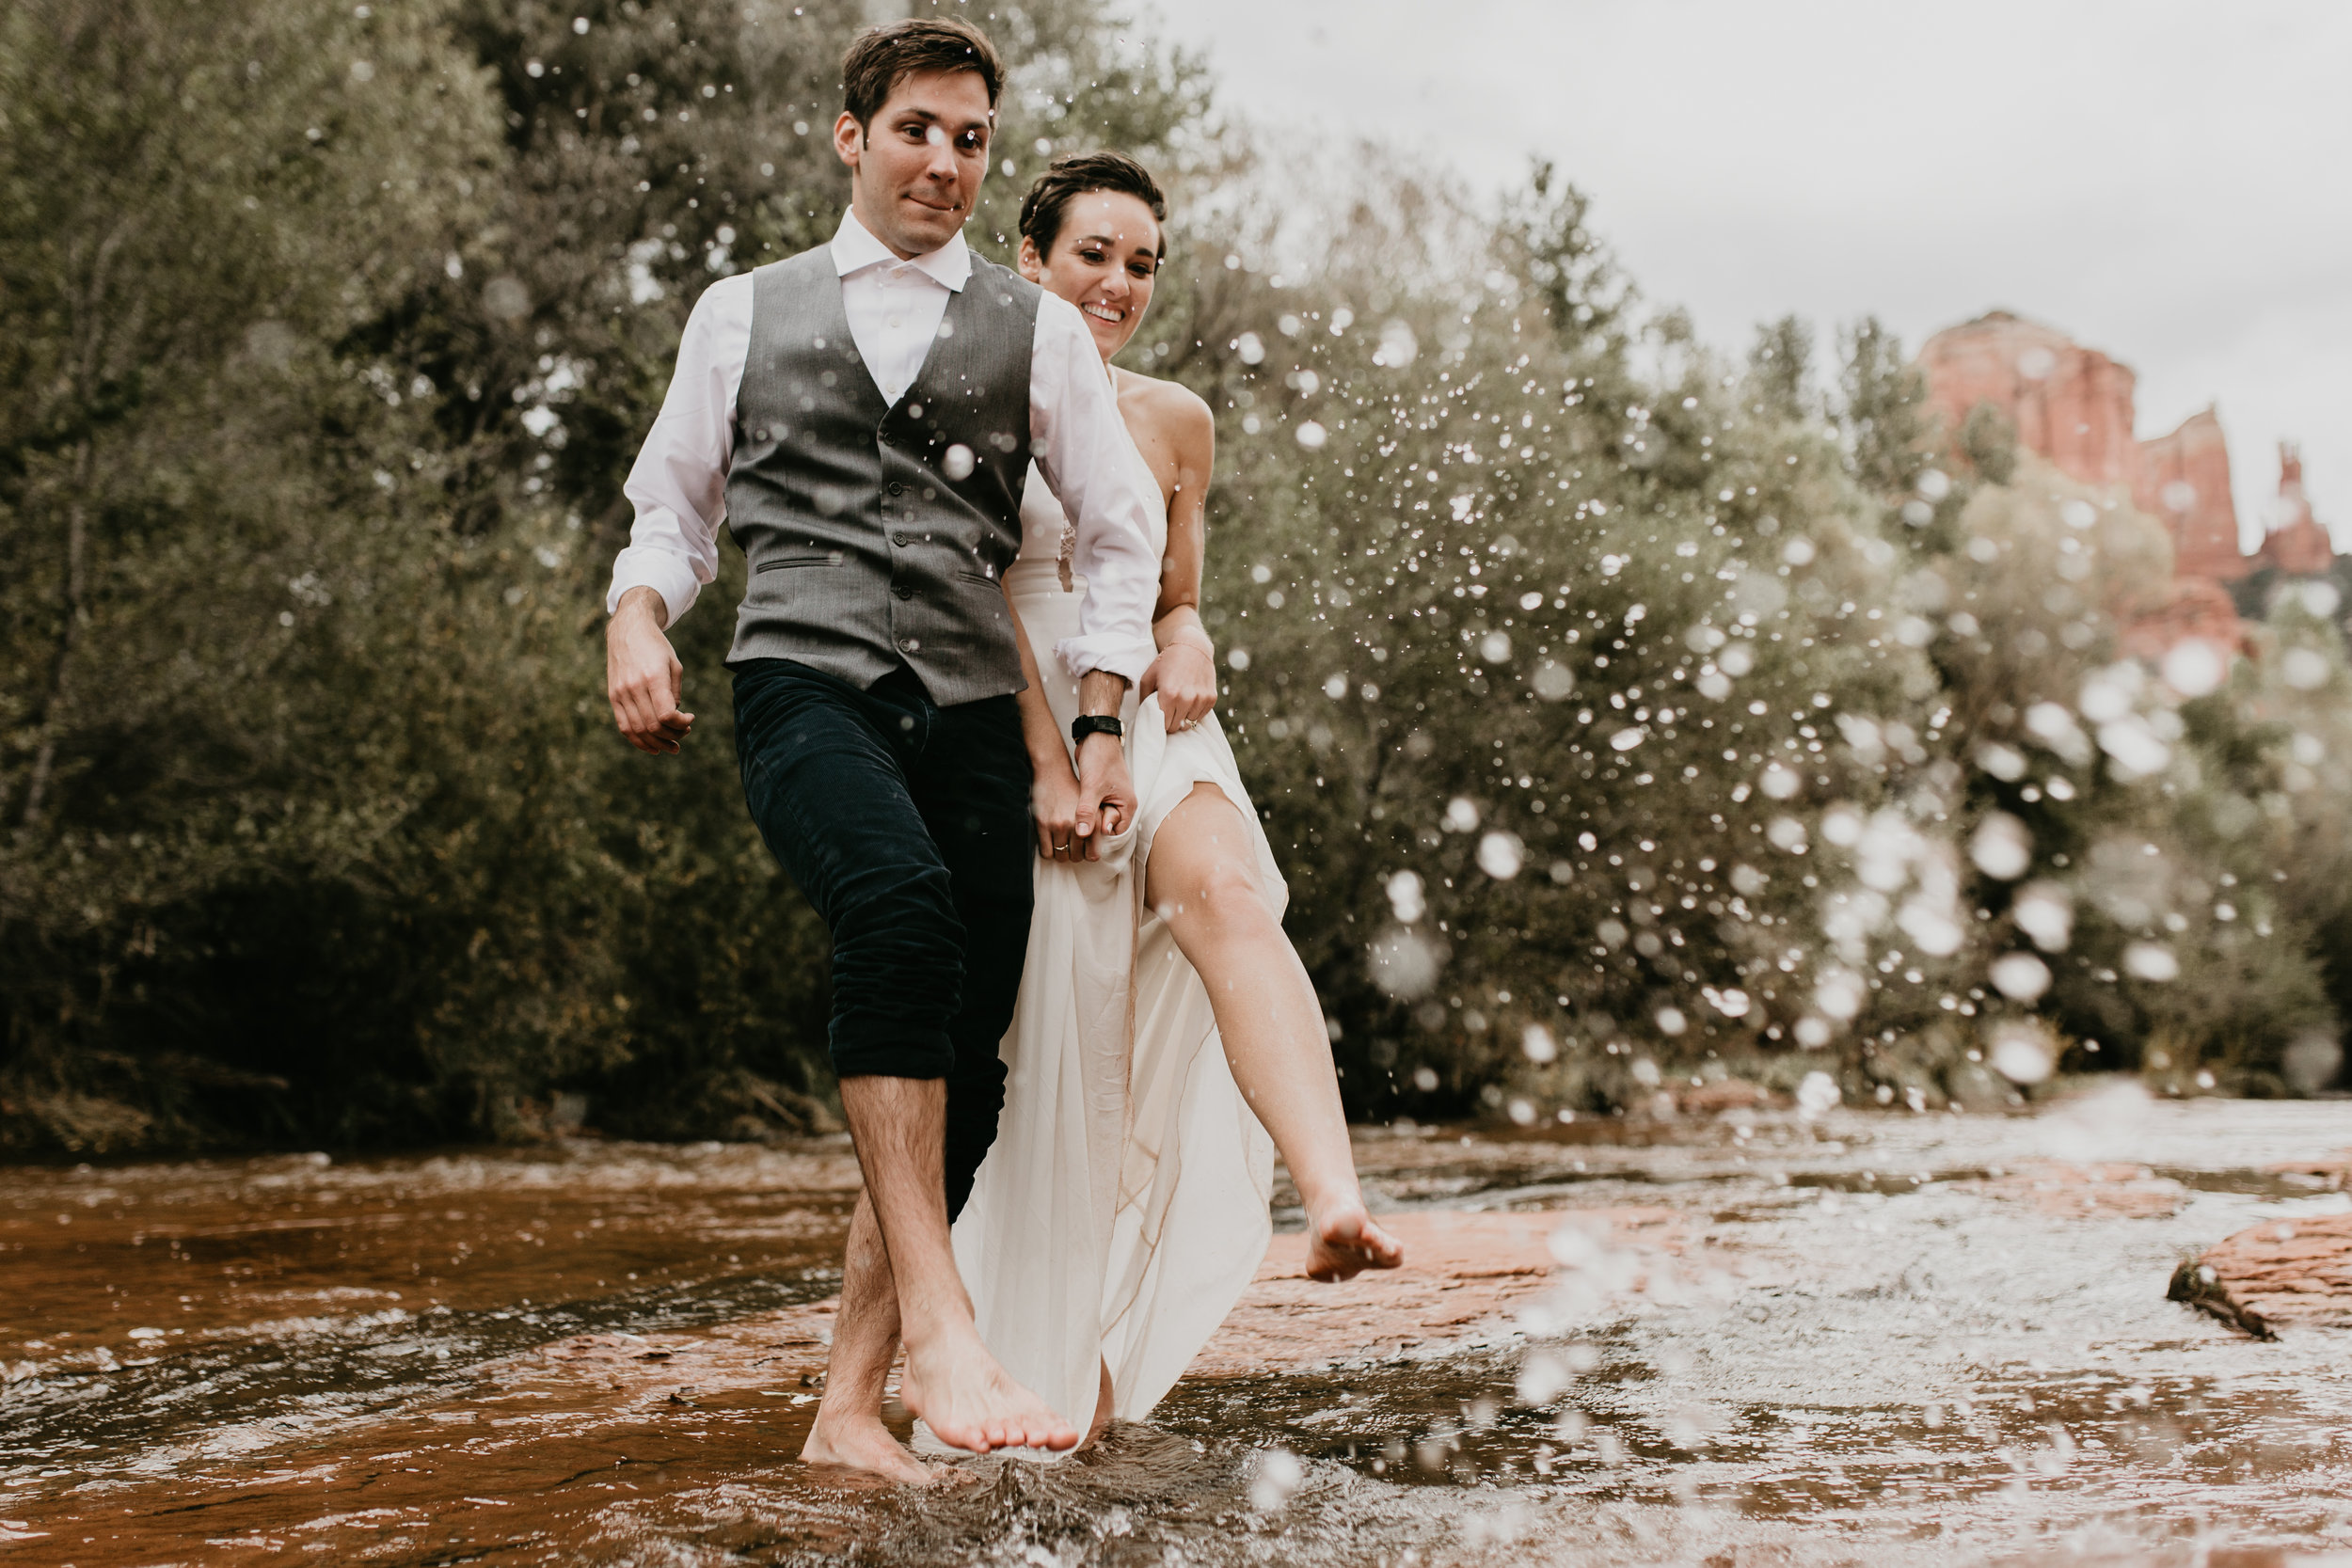 nicole-daacke-photography-sedona-arizona-adventurous-elopement-adventure-elope-photographer-cathedral-rock-sedona-vortex-intimate-wedding-hiking-elopement-photographer-60.jpg